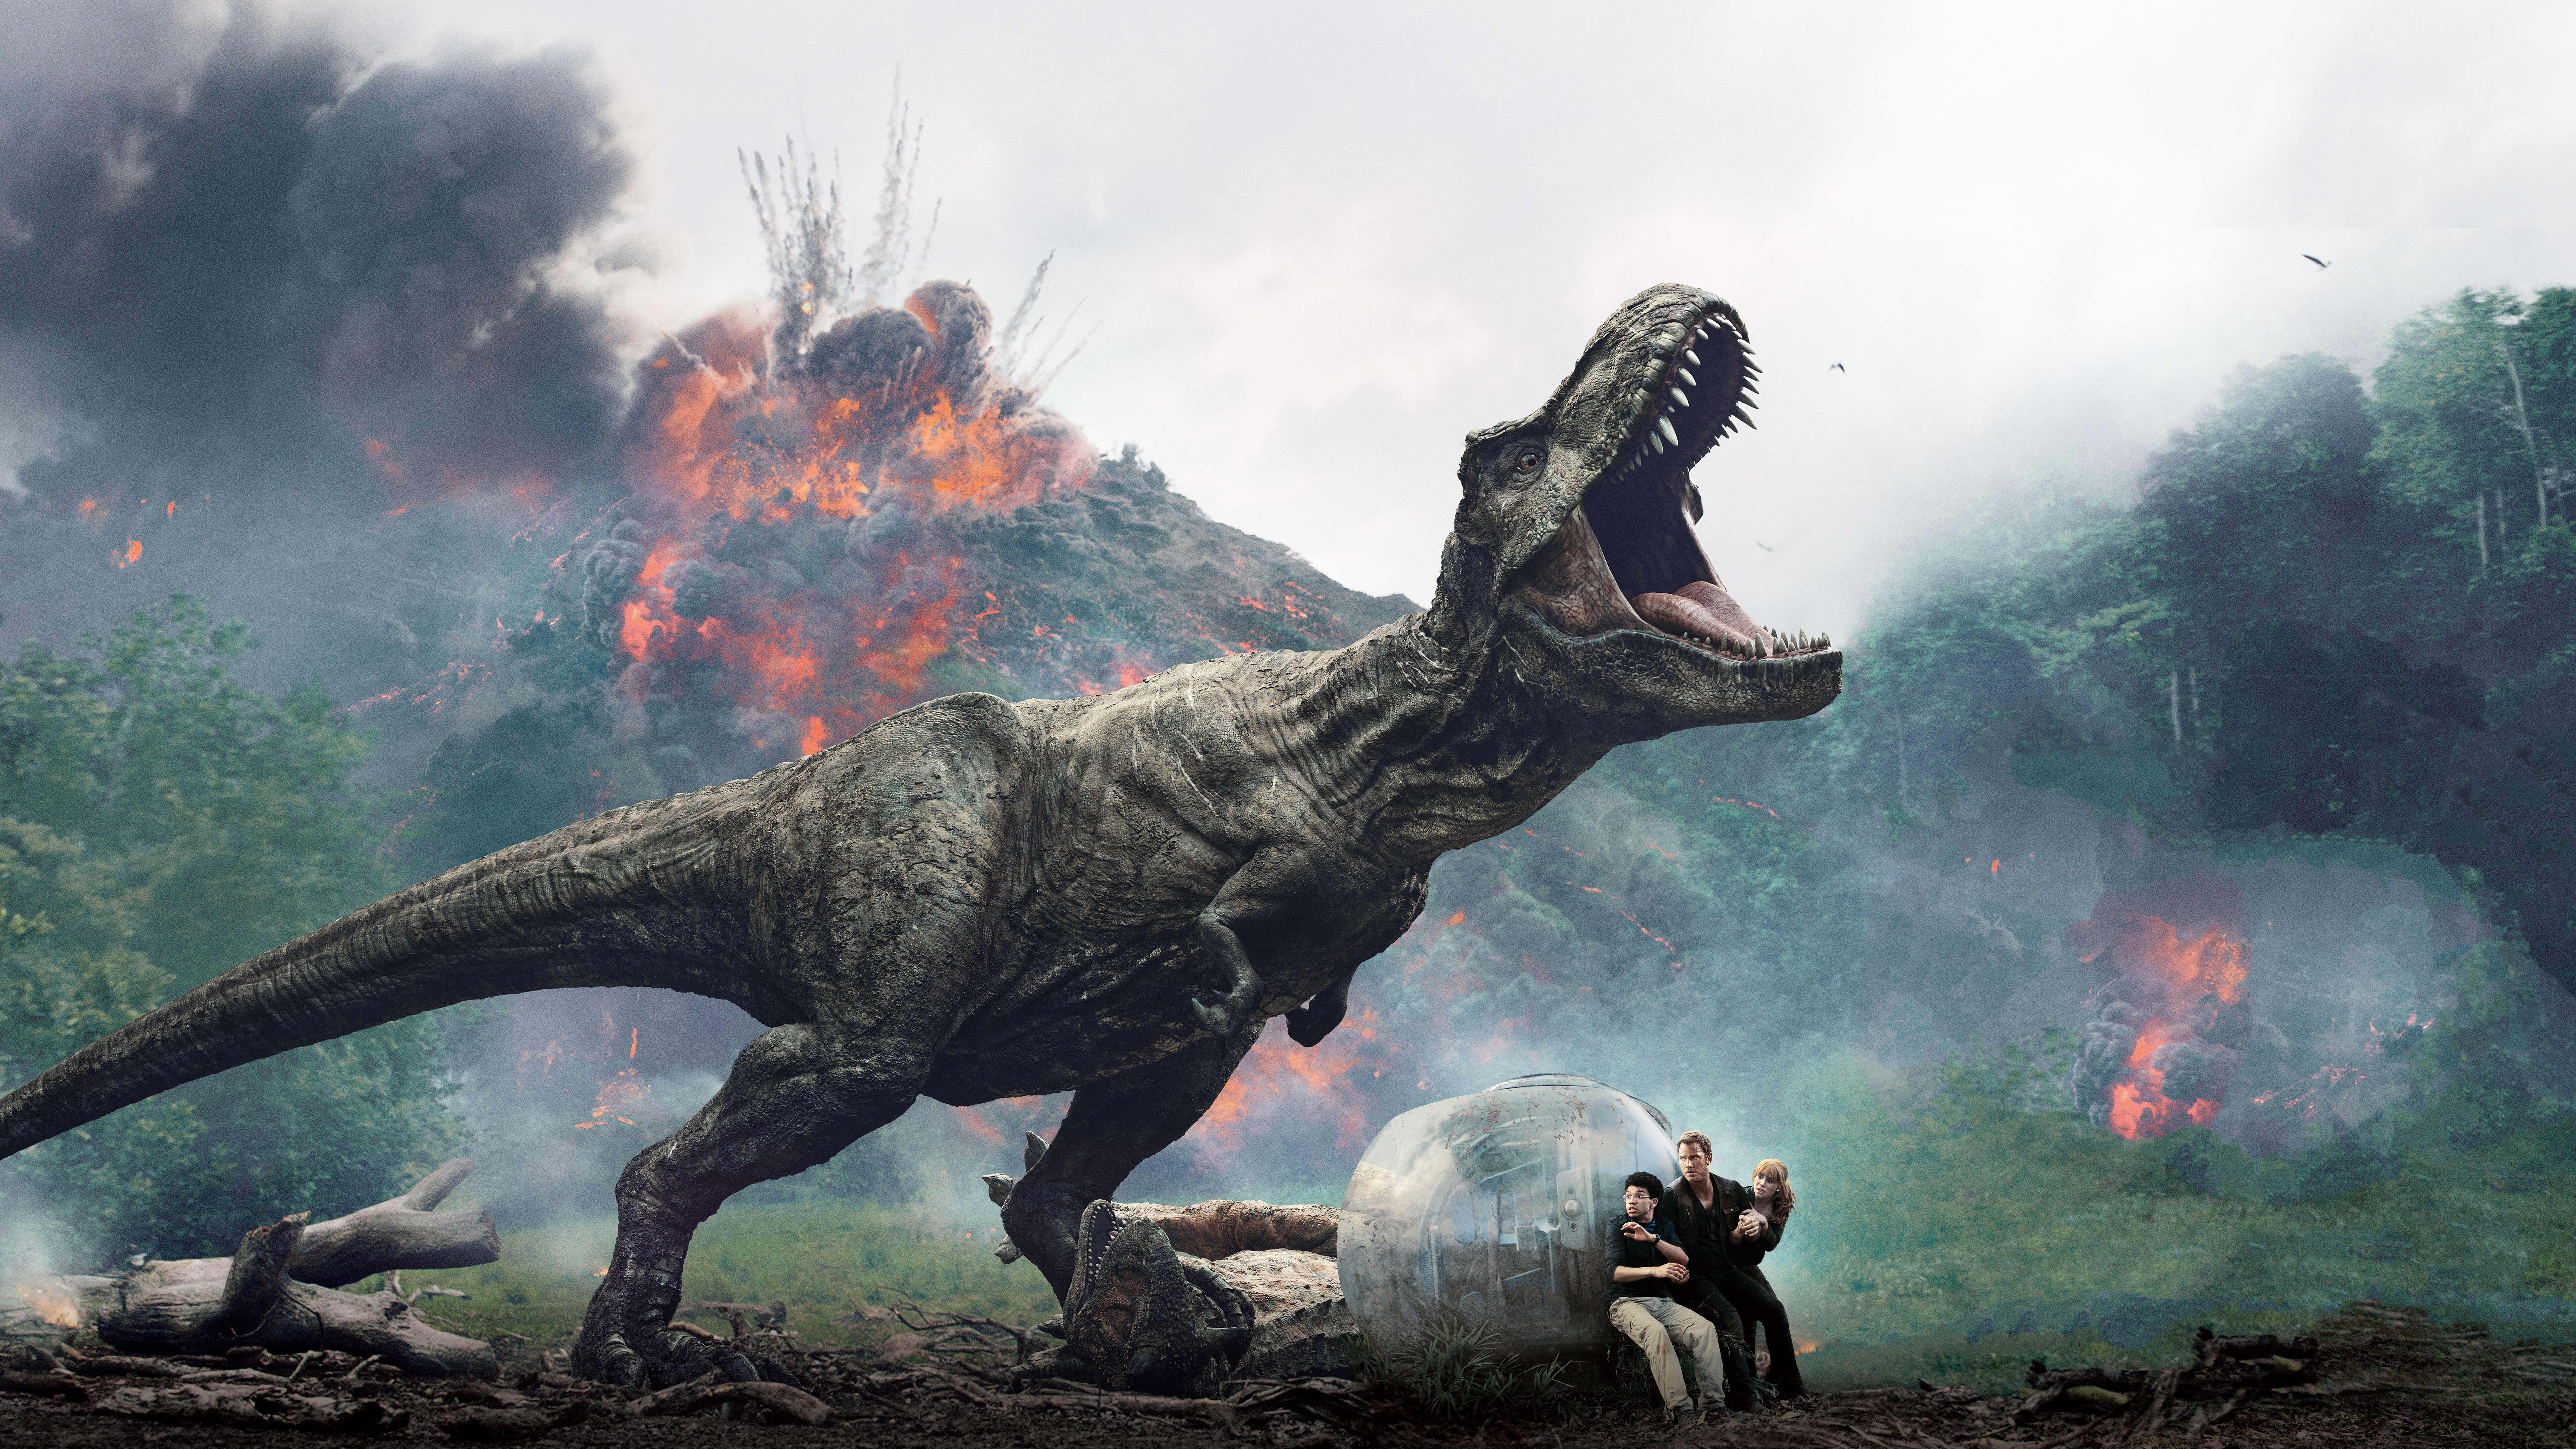 7680x4320 Jurassic World Fallen Kingdom 12k International Poster